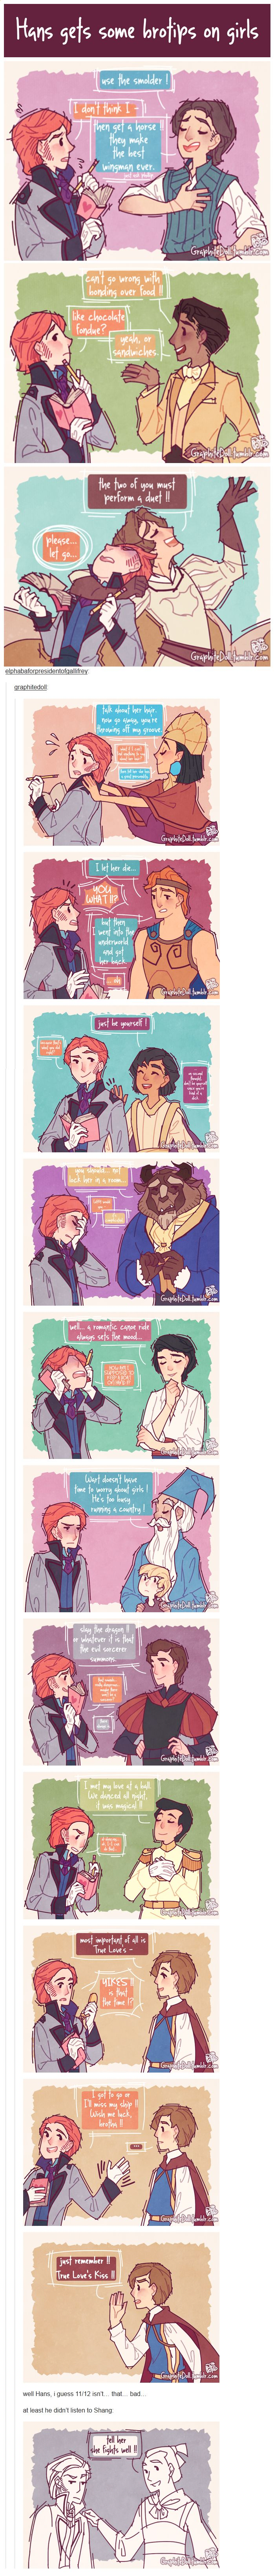 BEST THING EVER MADE. I've been waiting for this to make its way from Tumblr to Pinterest in its entirety!